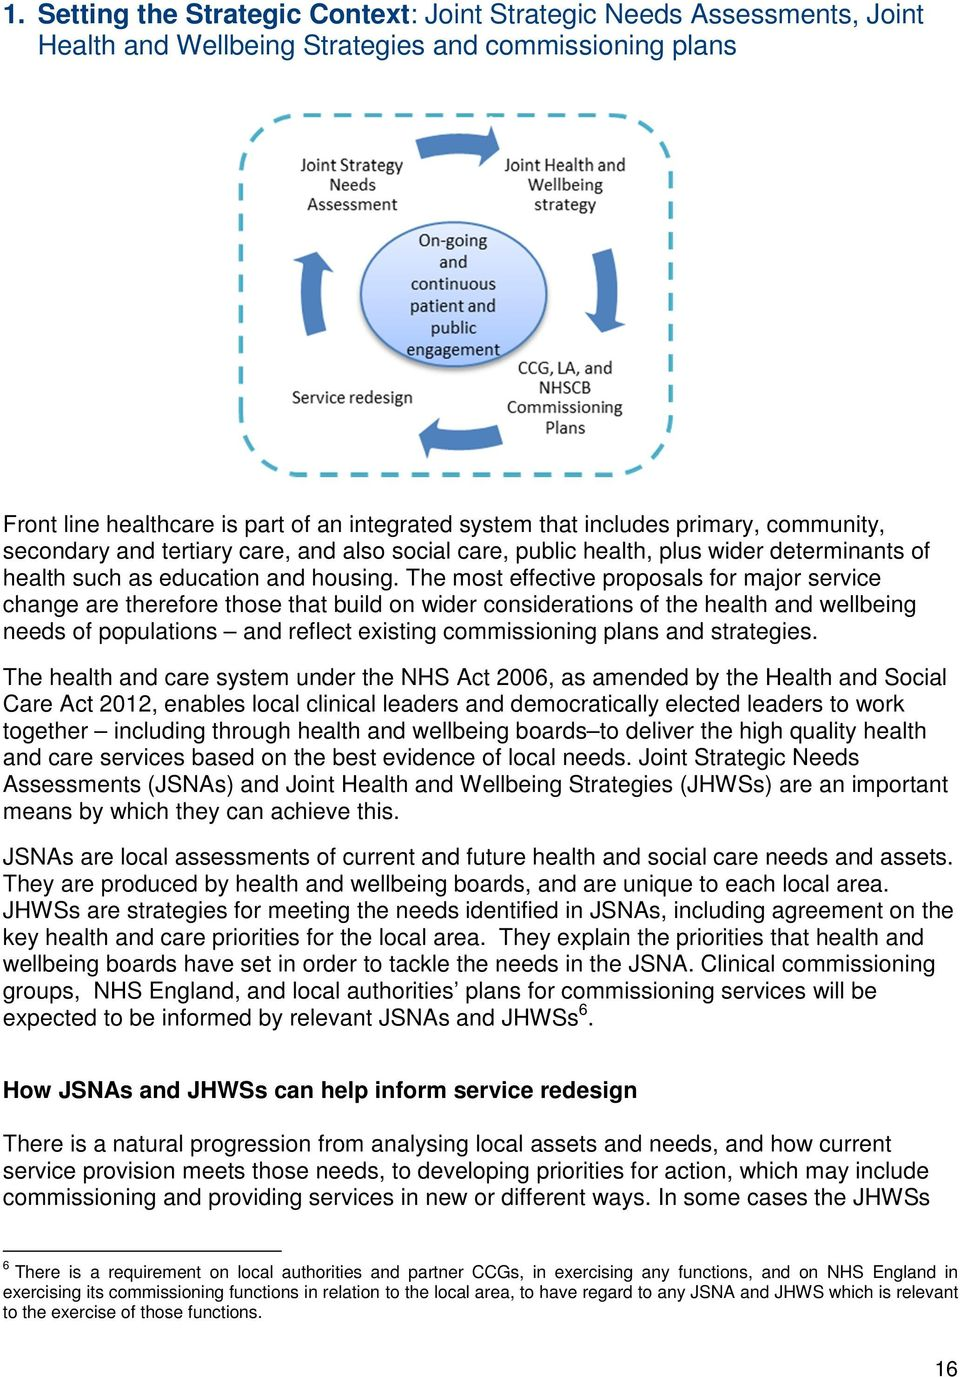 The most effective proposals for major service change are therefore those that build on wider considerations of the health and wellbeing needs of populations and reflect existing commissioning plans